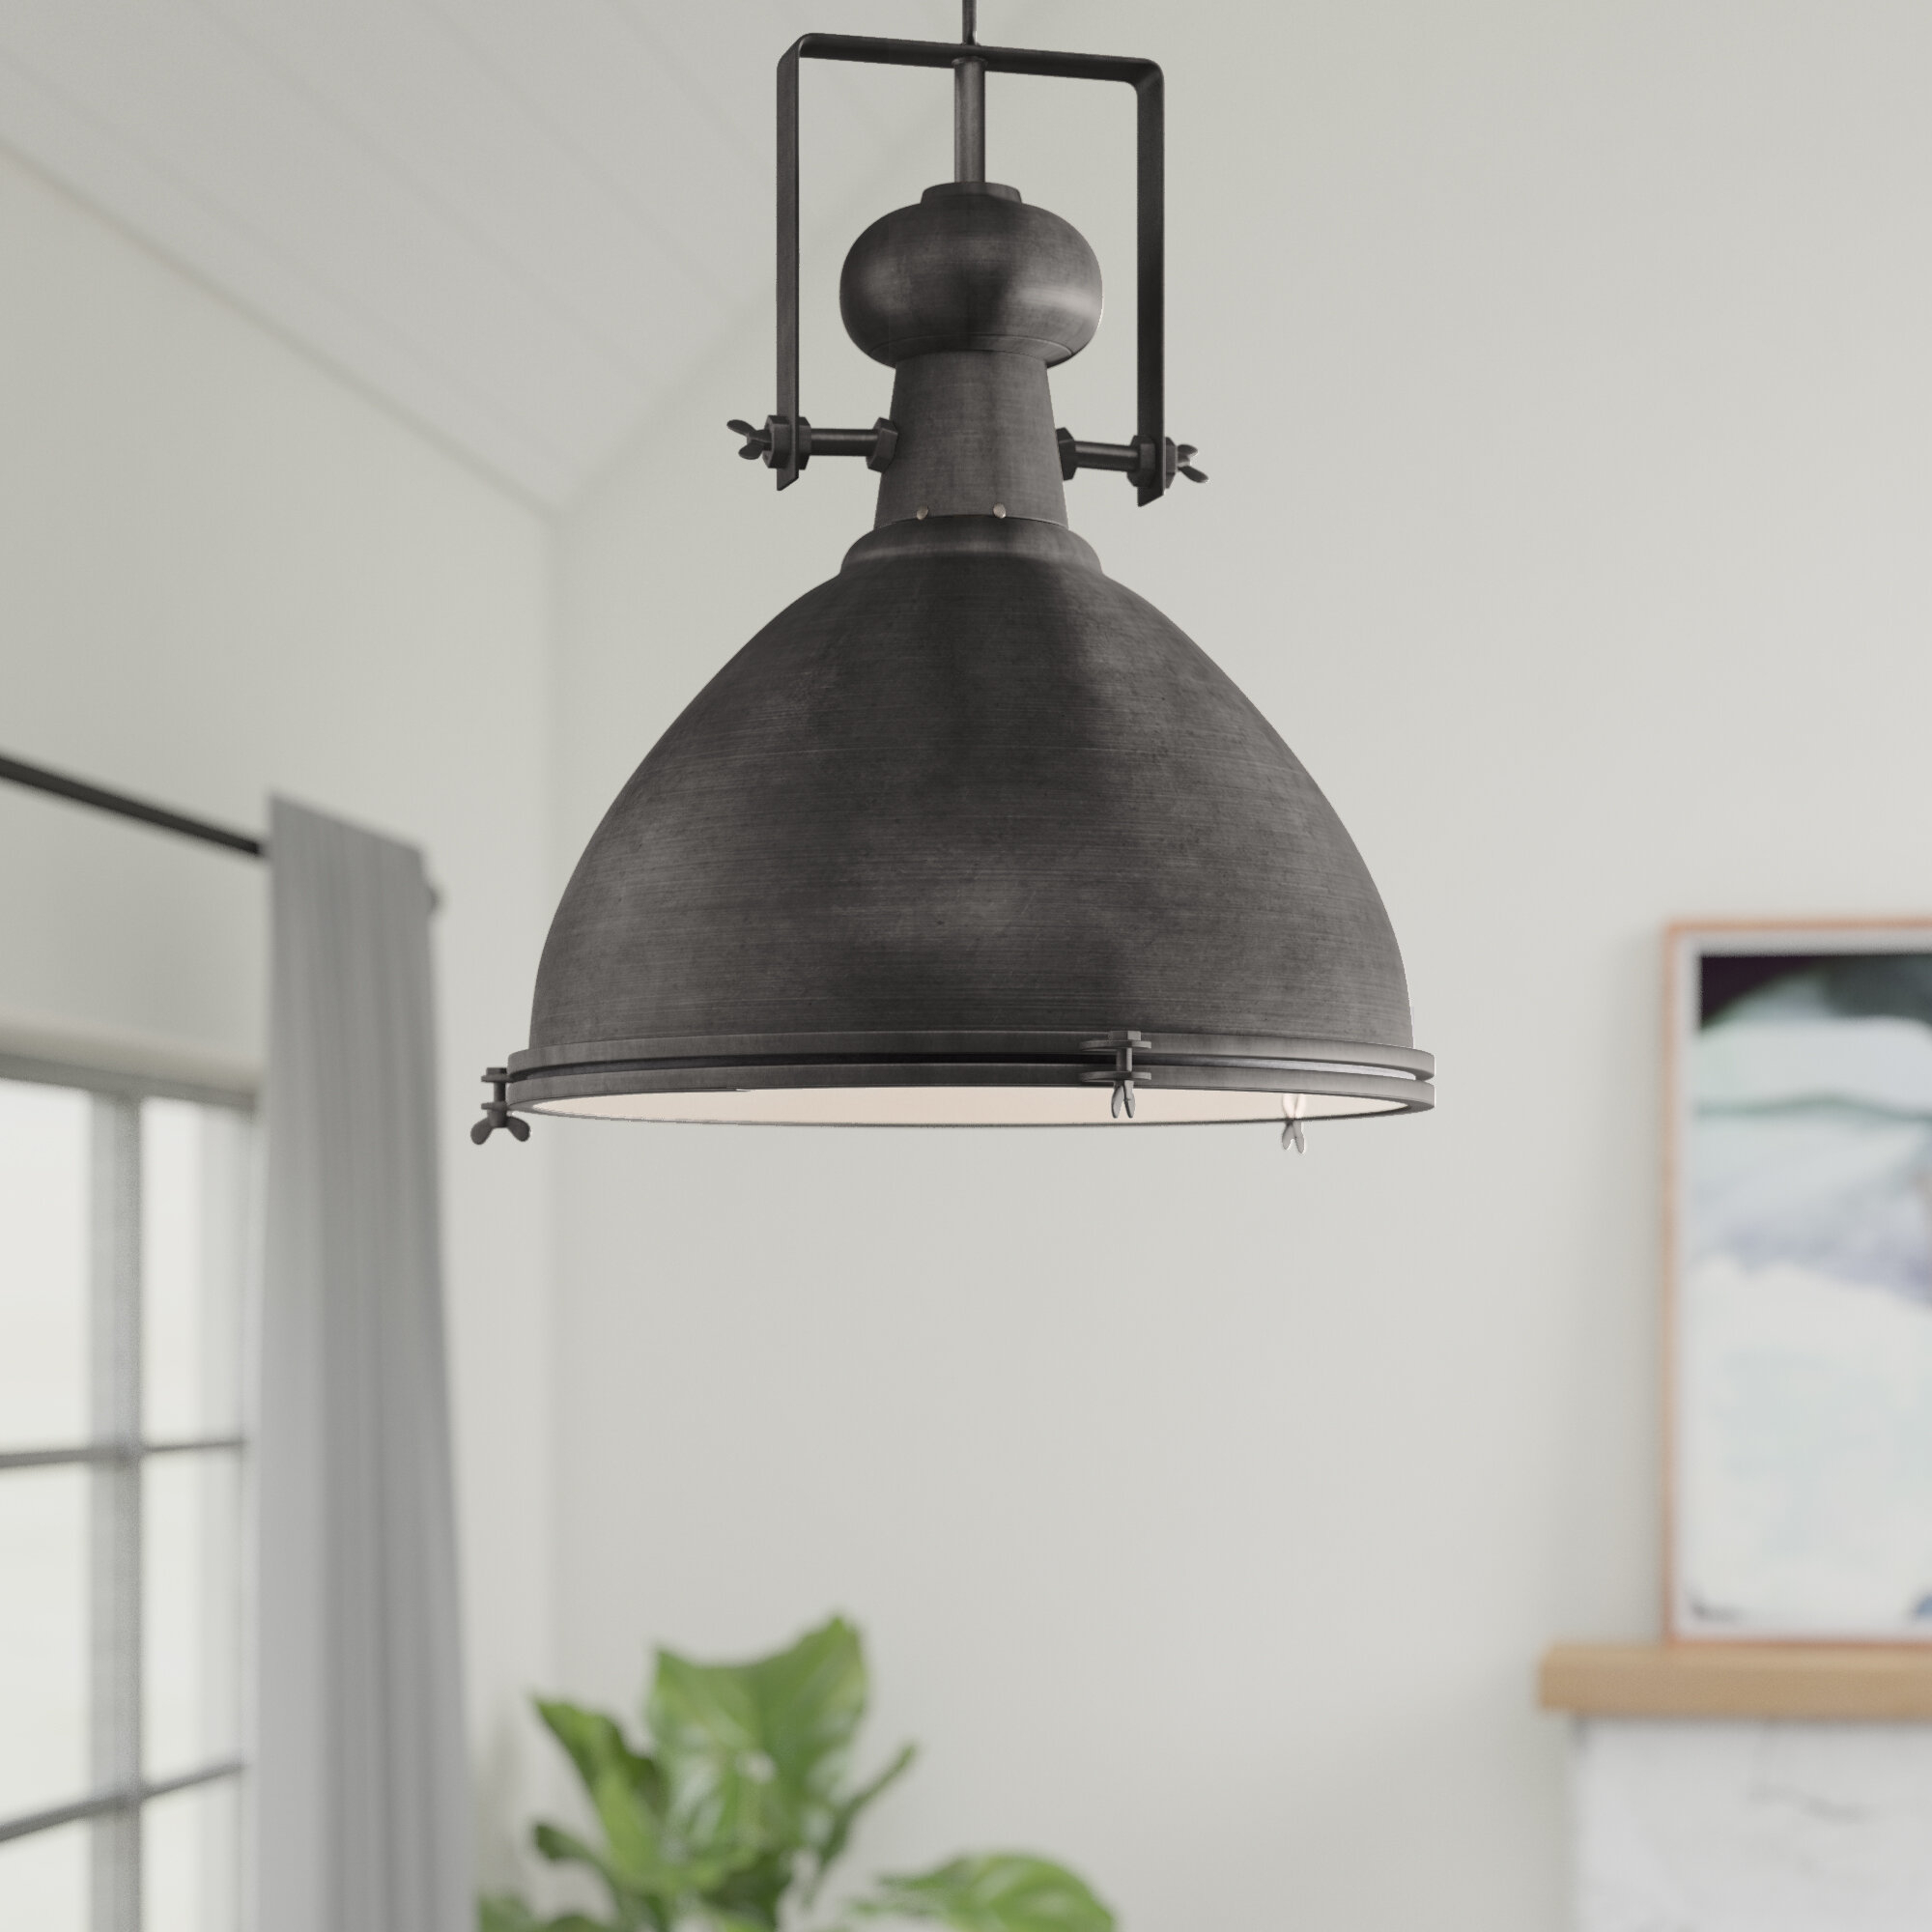 17 Stories Lavern 1 Light Single Dome Pendant For Hamilton 1 Light Single Dome Pendants (Gallery 6 of 30)